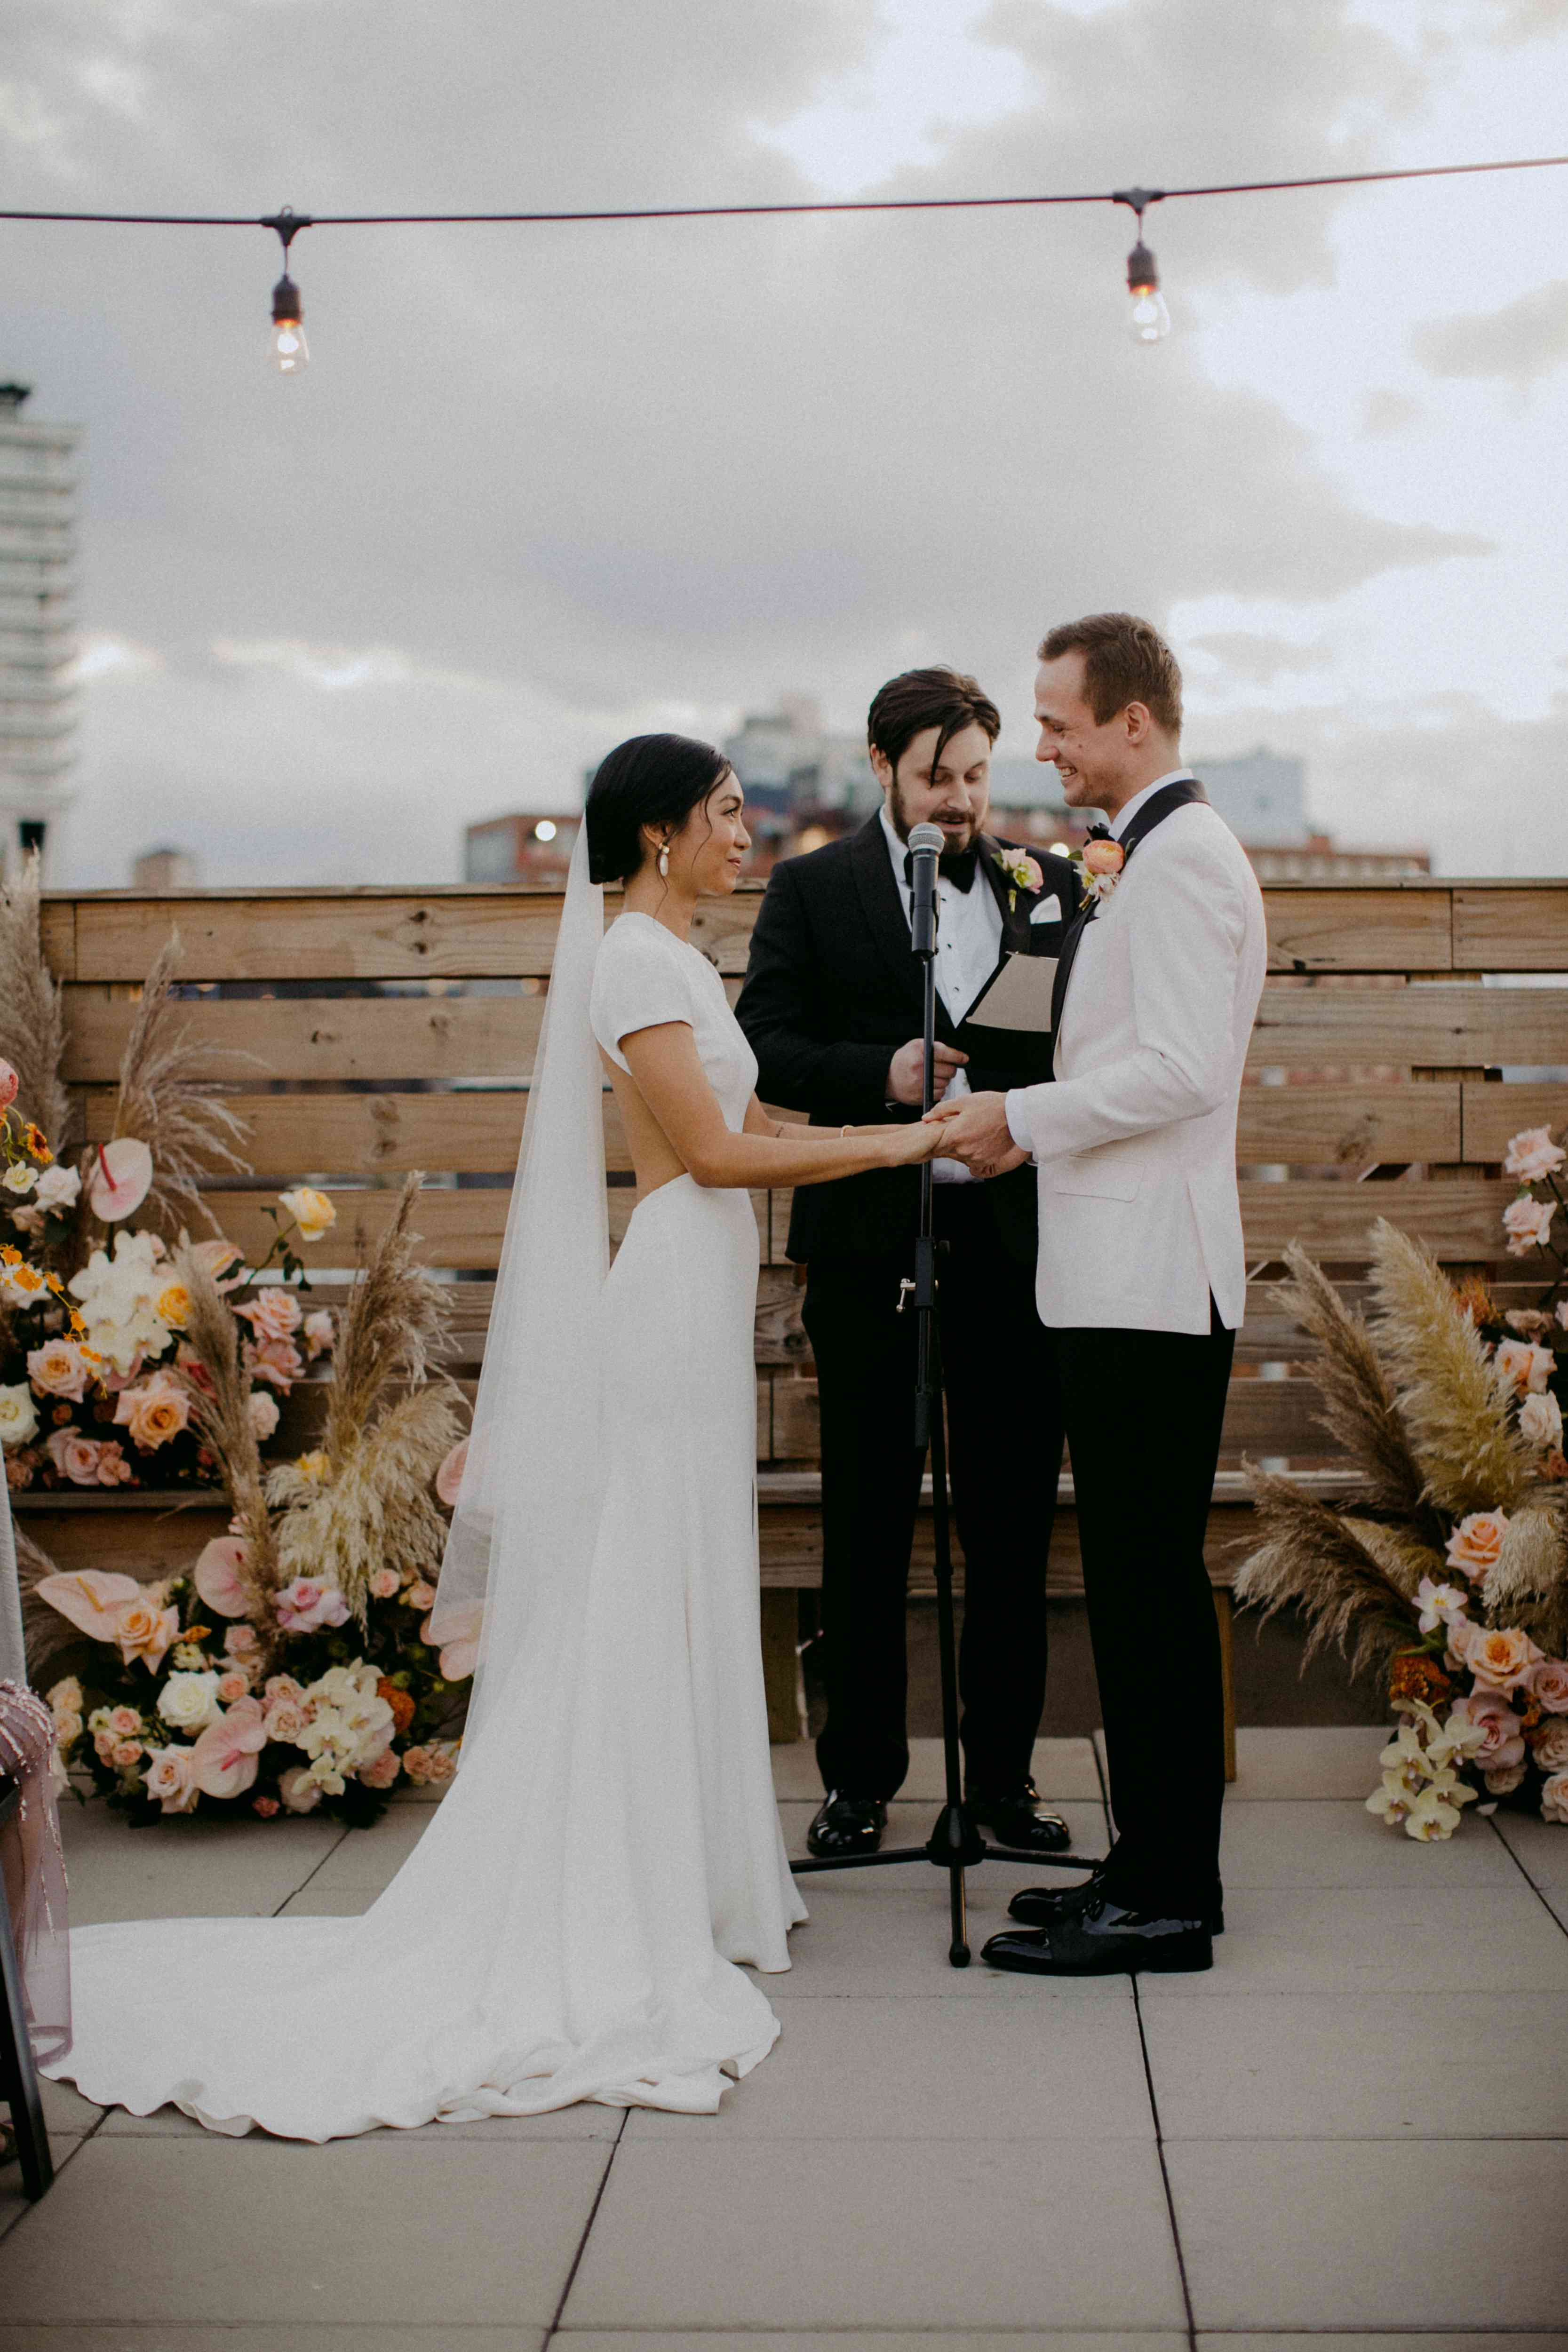 <p>exchanging vows</p><br><br>